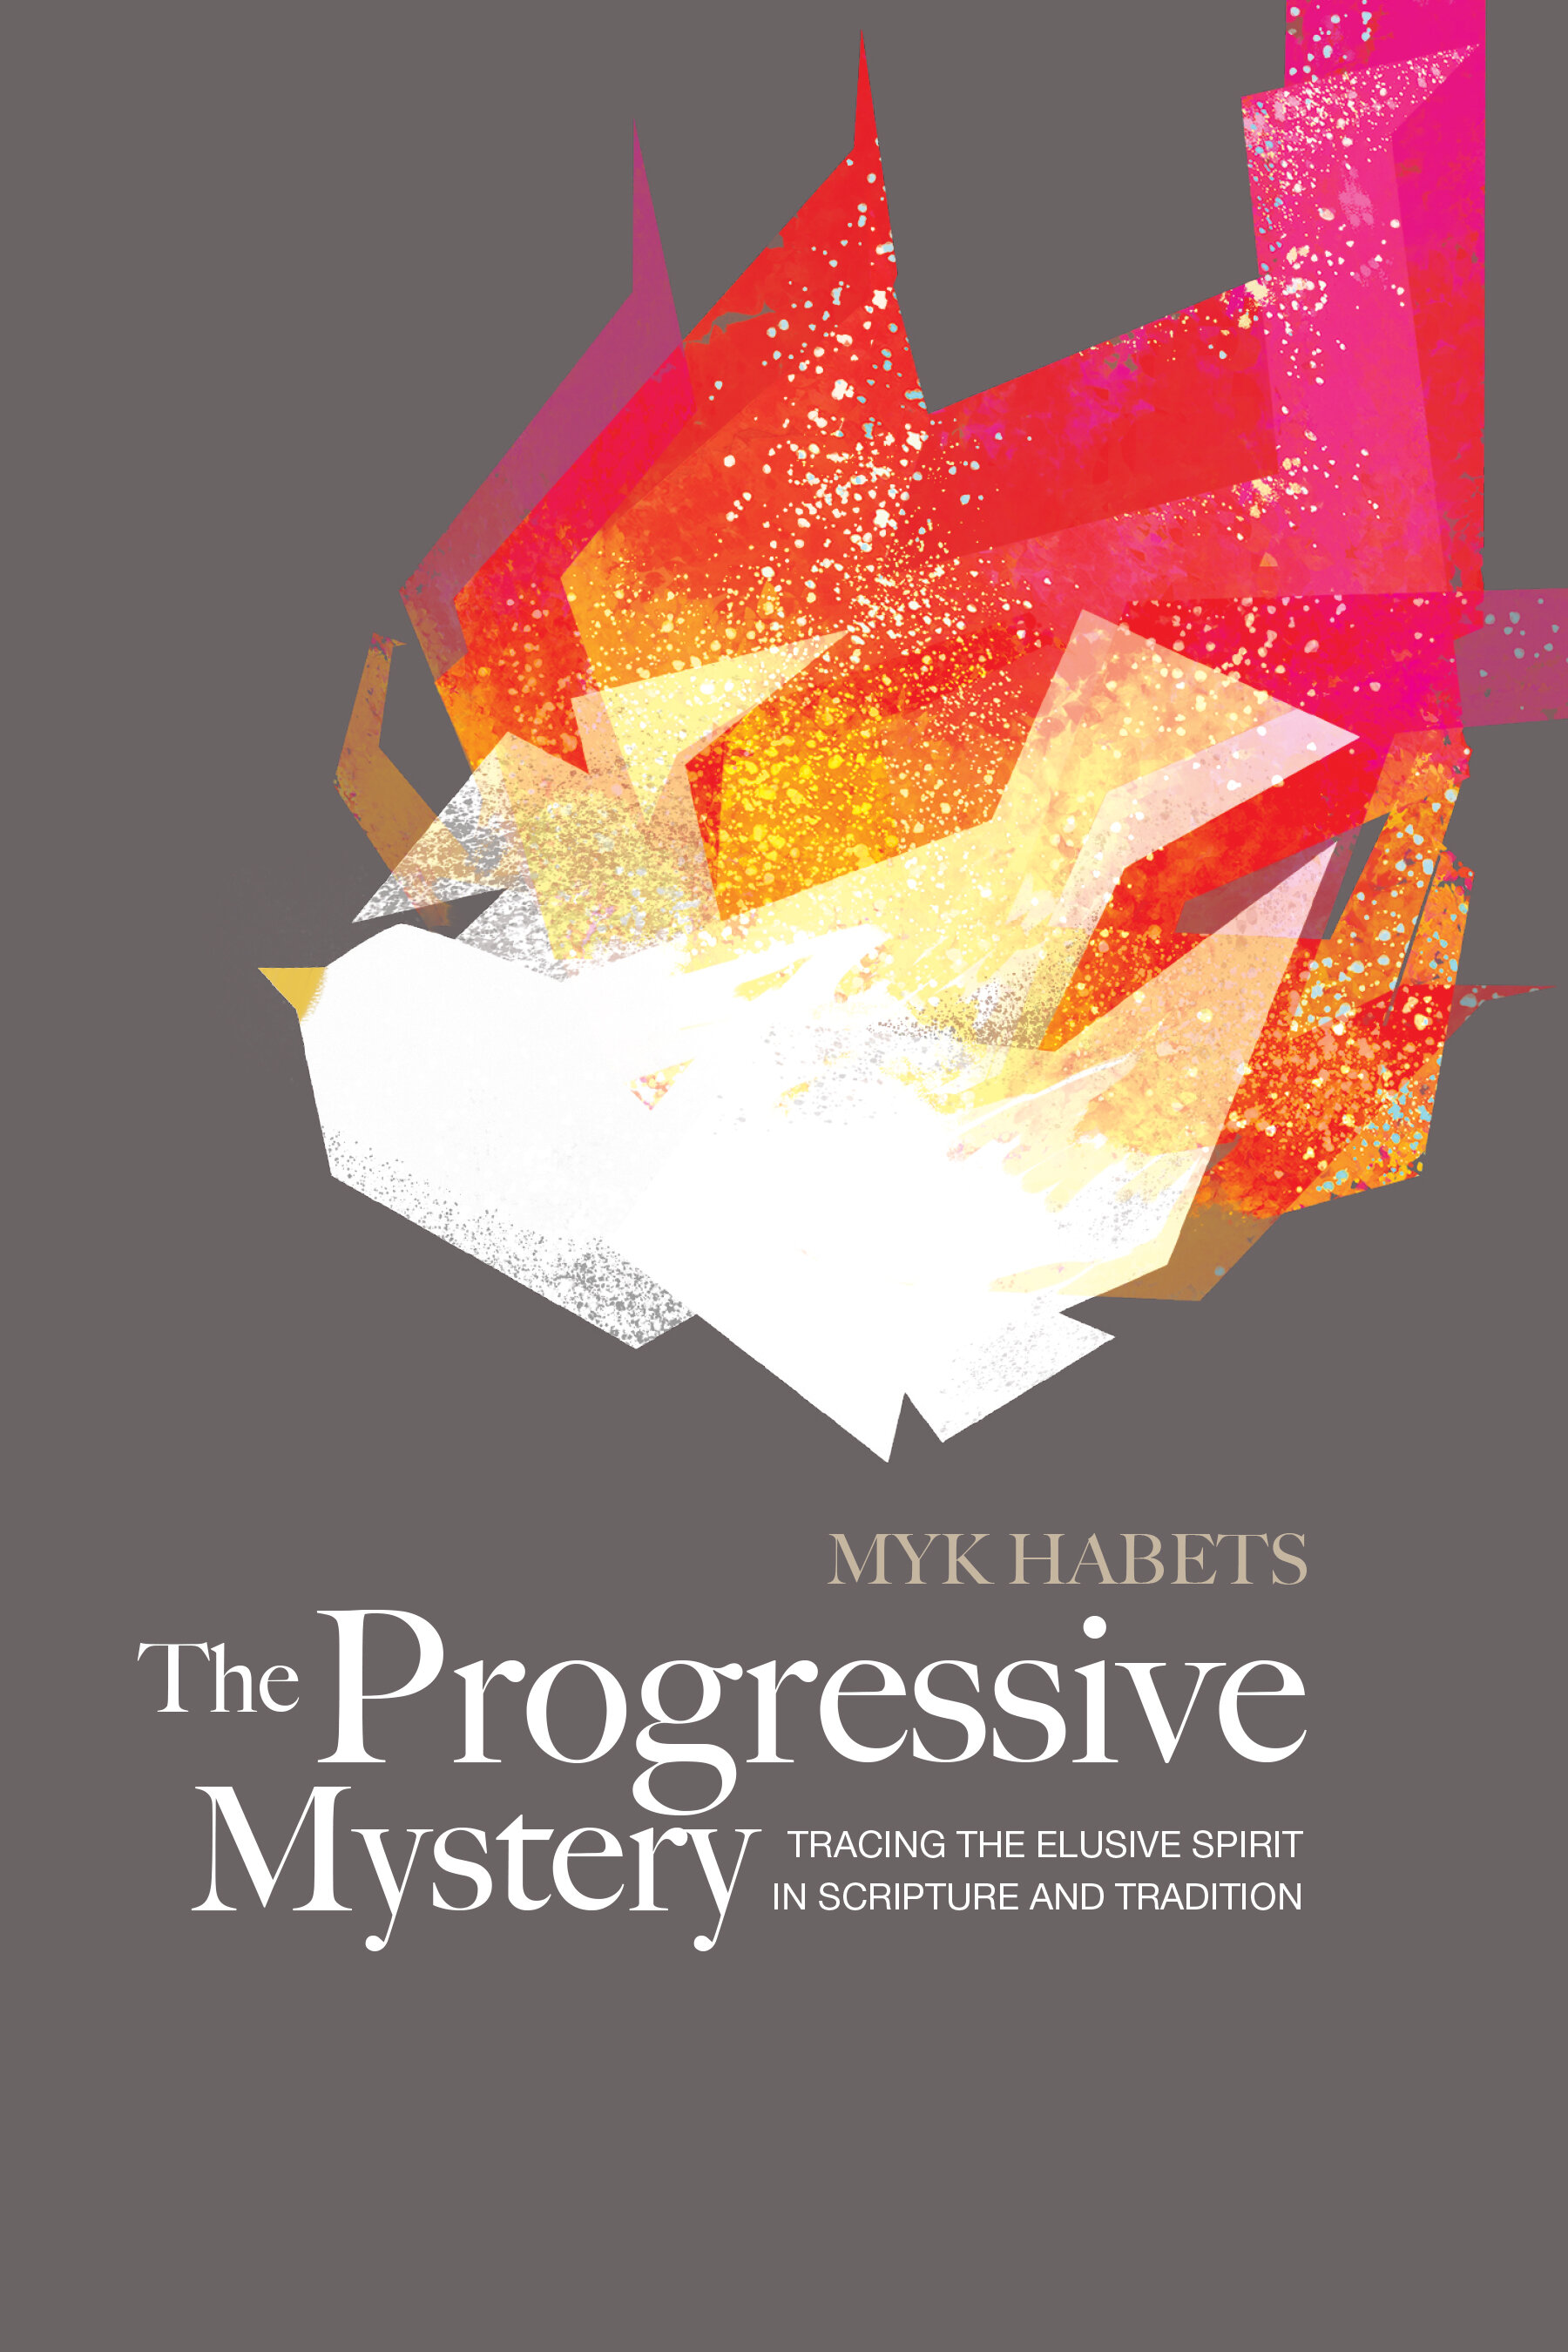 The Progressive Mystery: Tracing the Elusive Spirit in Scripture and Tradition